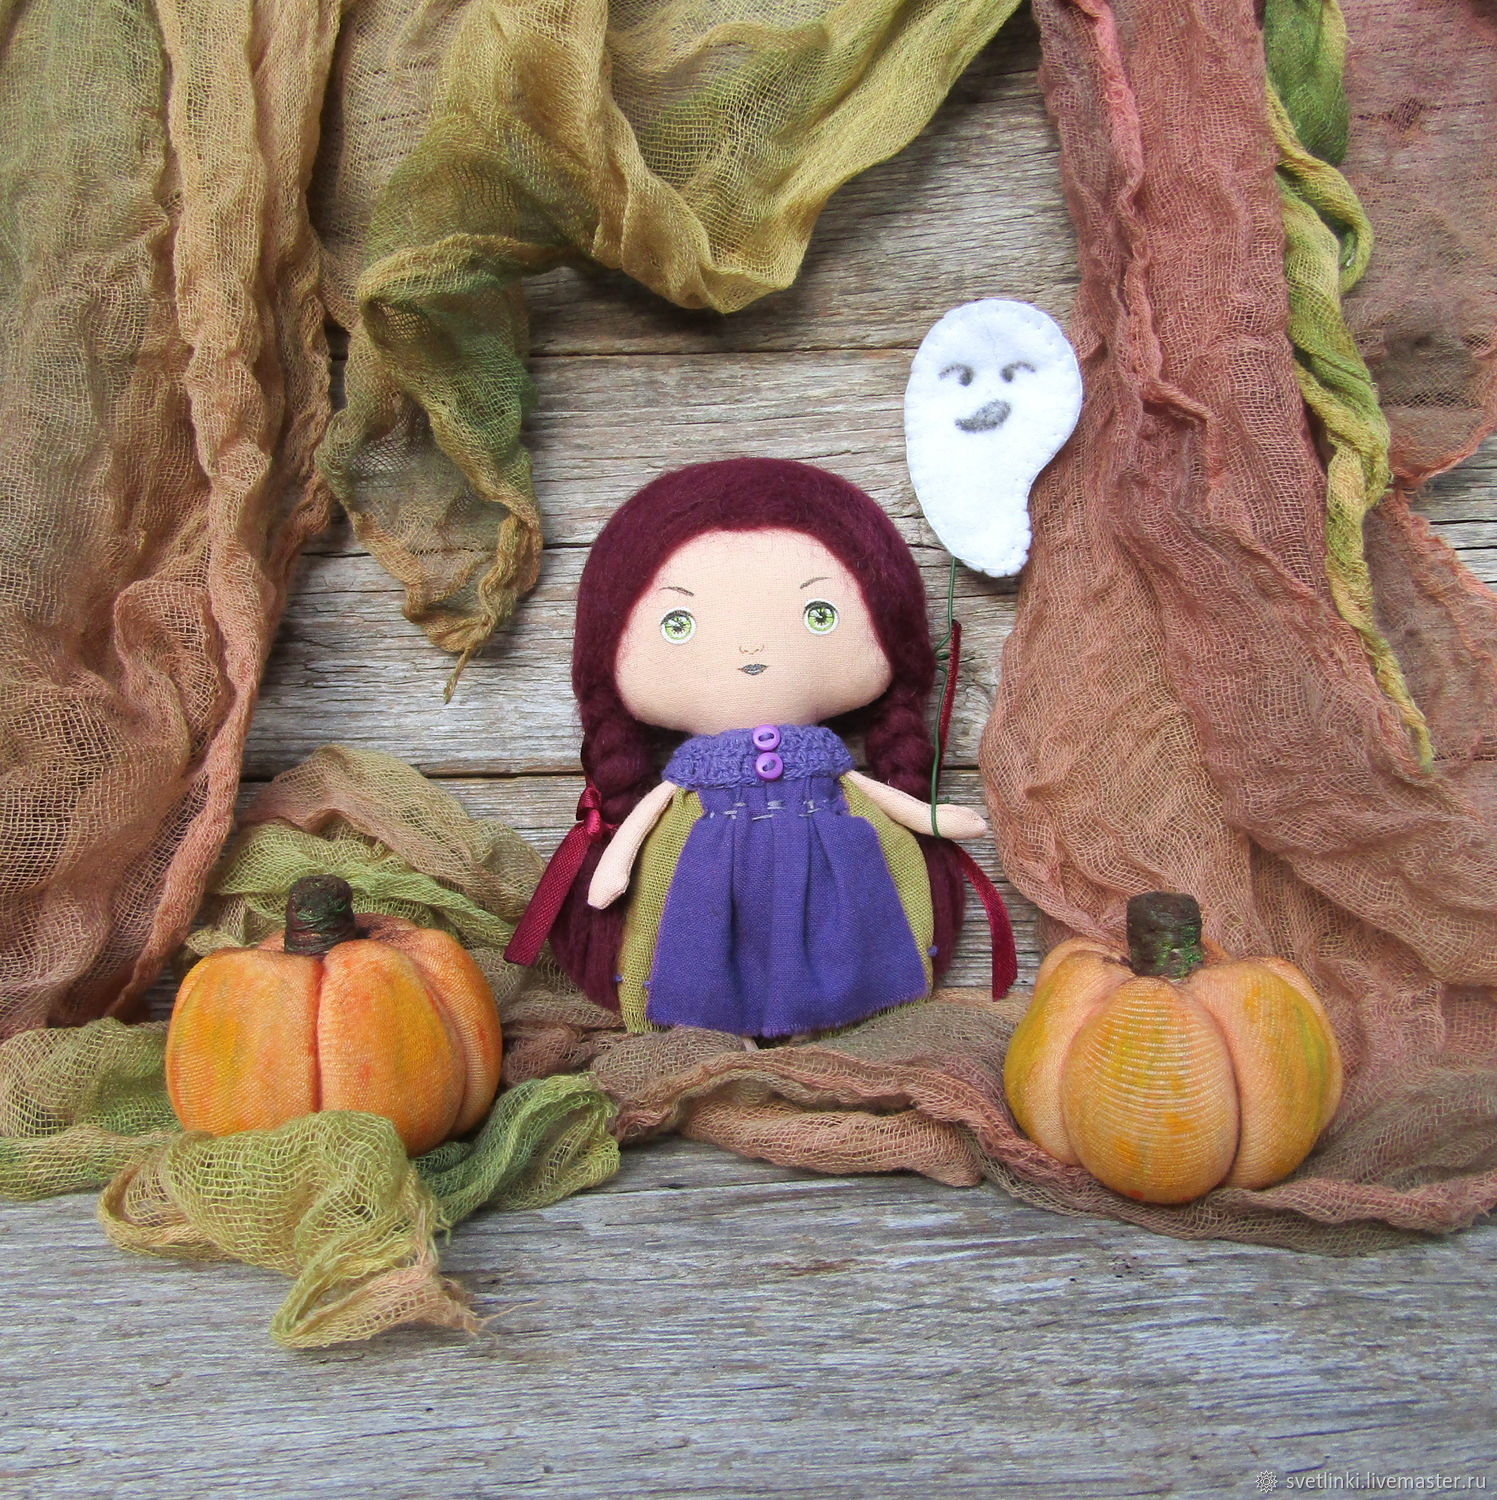 Set of Autumnal textile doll witch, pumpkin, runner – Halloween decor. Gifts for all ages. Svetlenky dolls and handmade toys. Fair Masters.